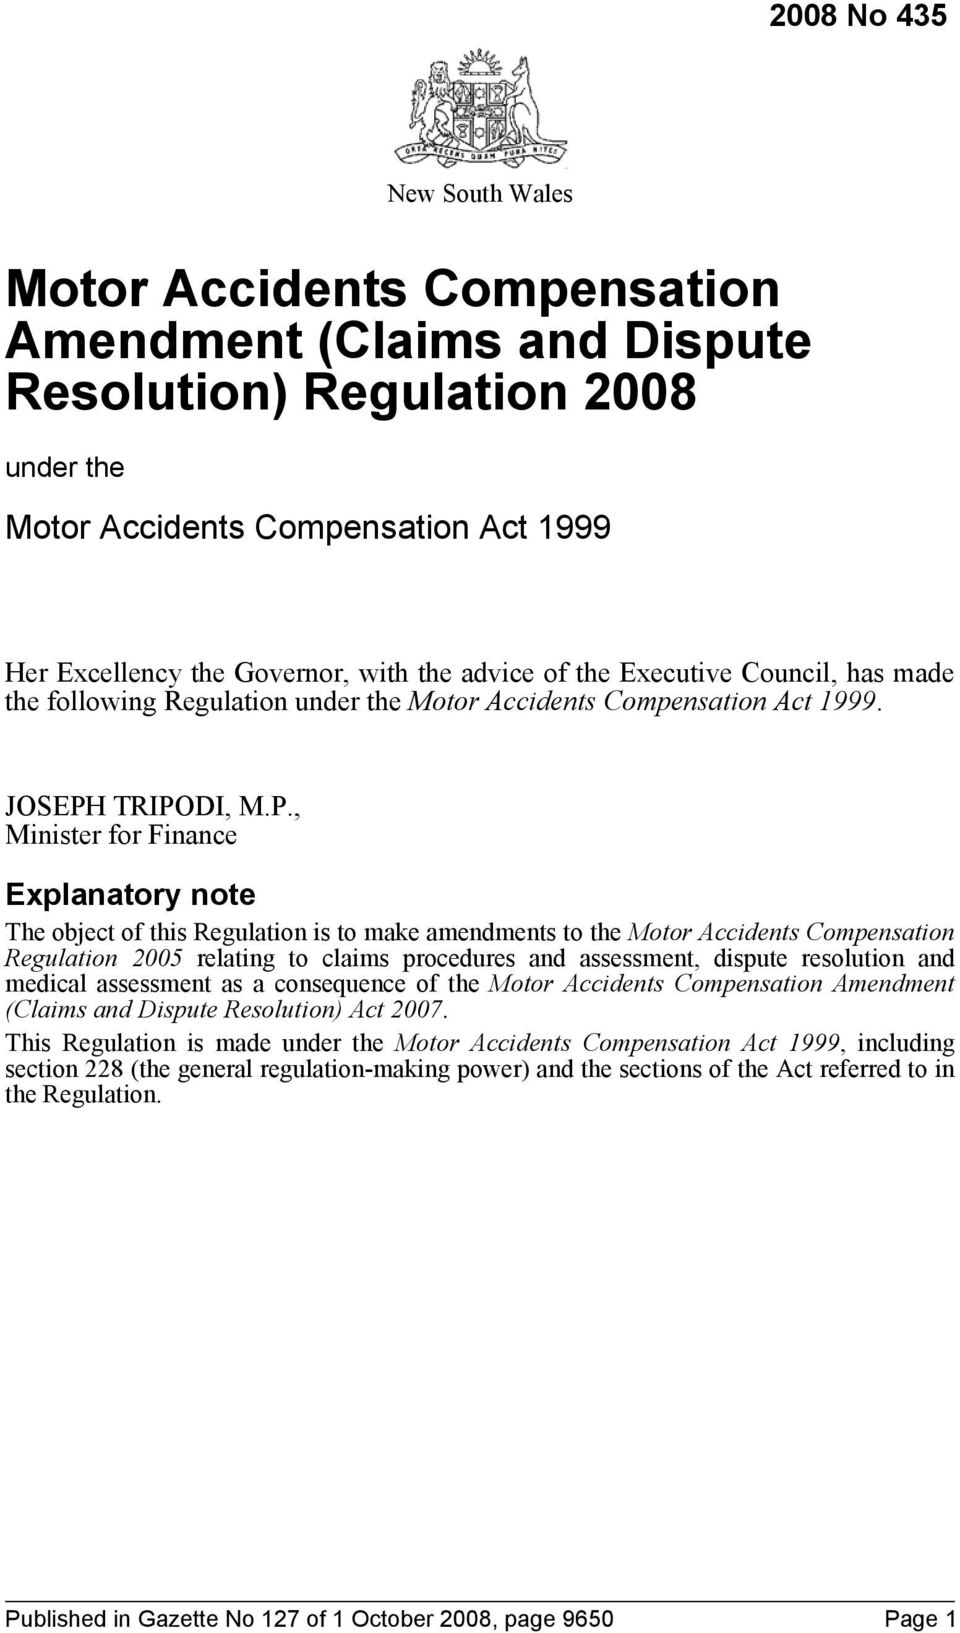 TRIPODI, M.P., Minister for Finance Explanatory note The object of this Regulation is to make amendments to the Motor Accidents Compensation Regulation 2005 relating to claims procedures and